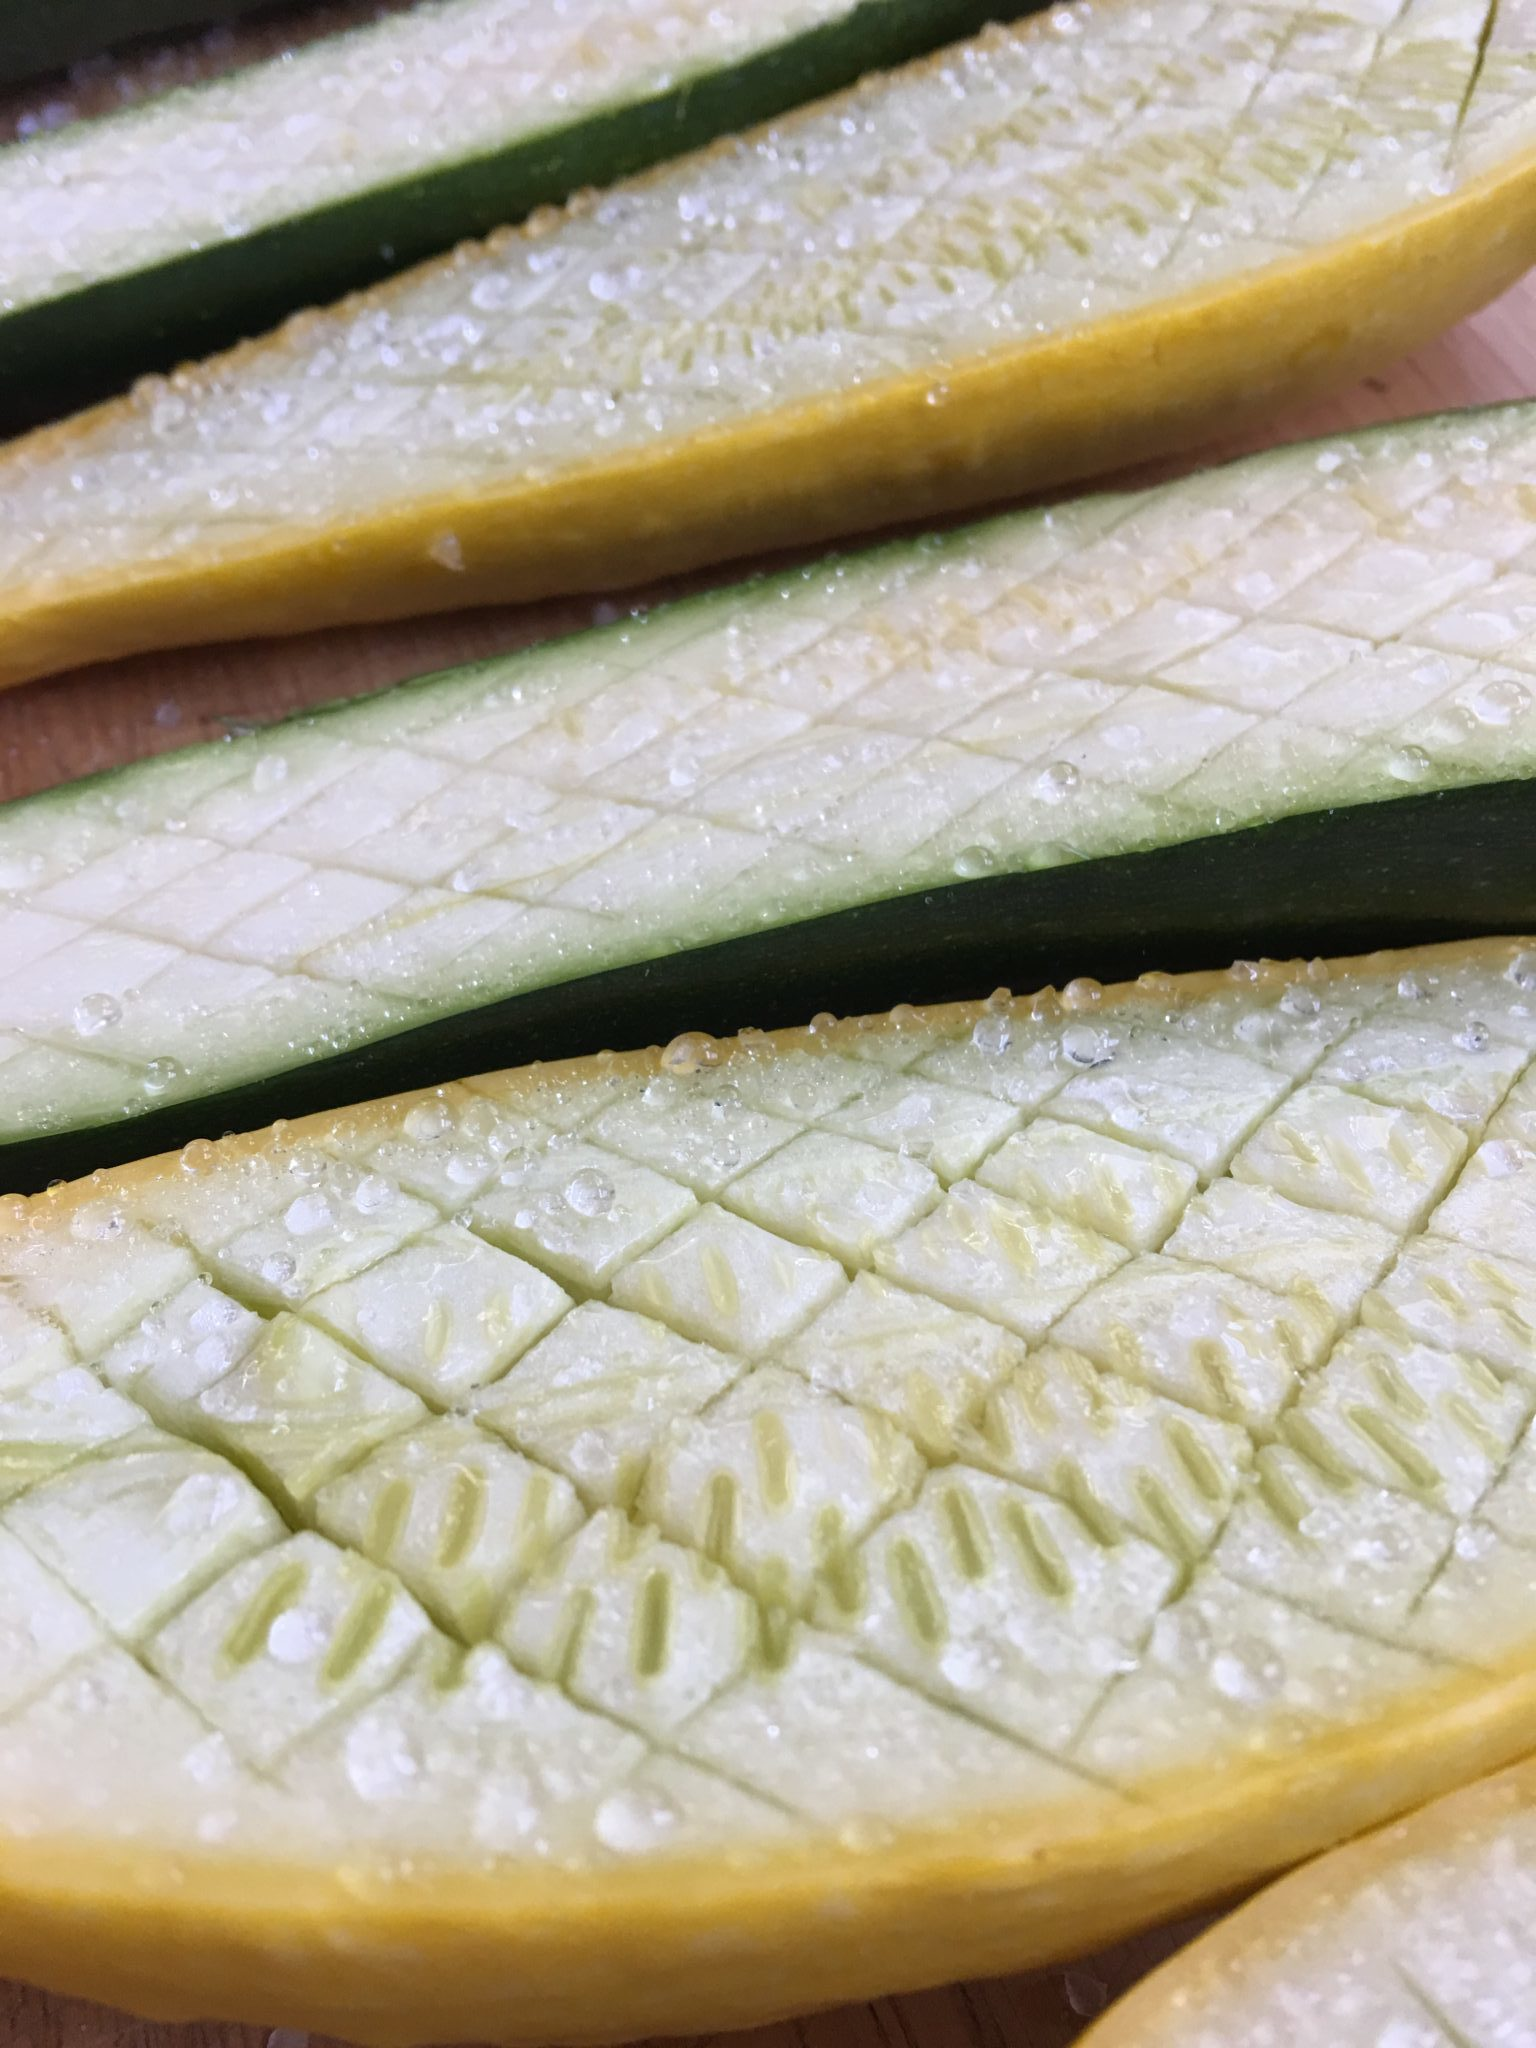 Zucchini prepared for roasting